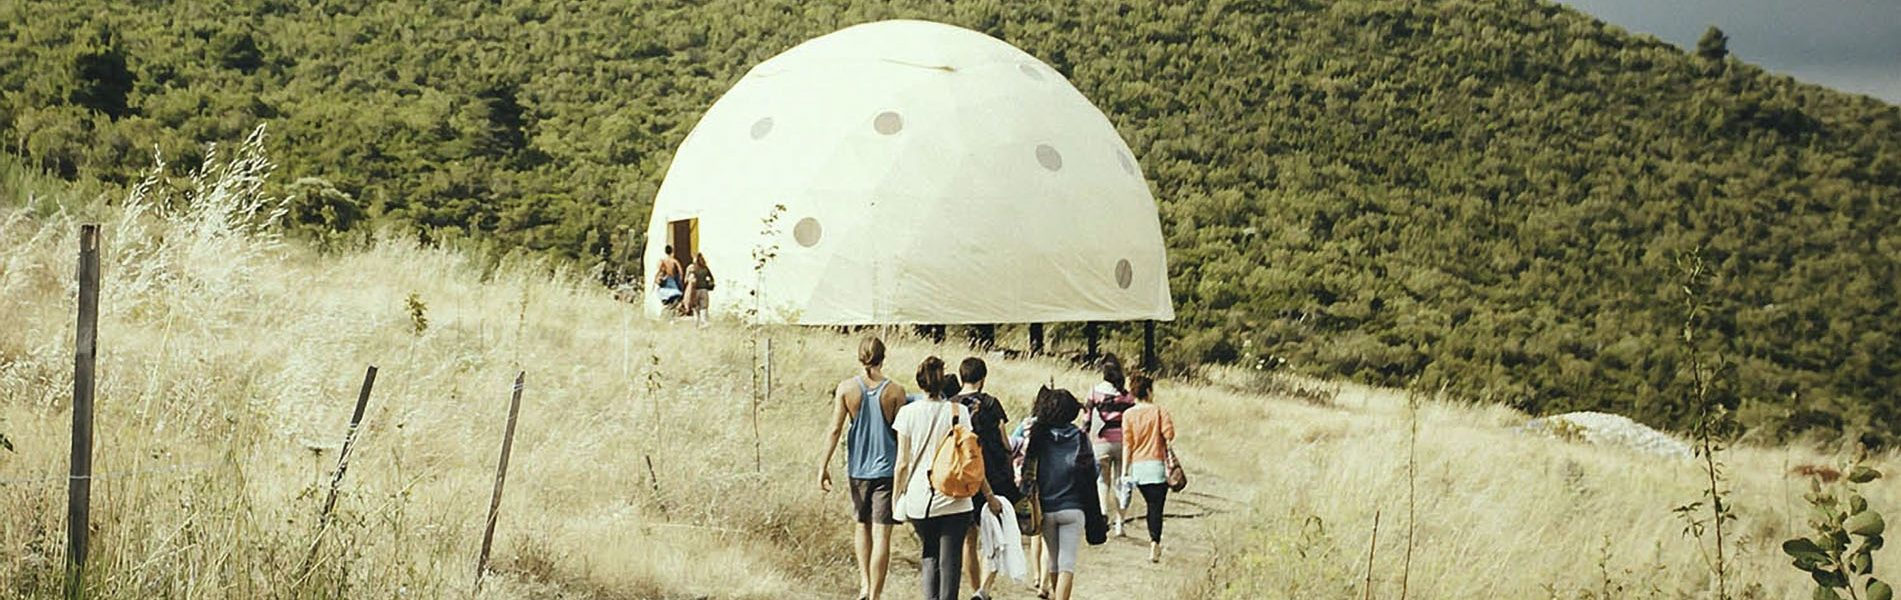 Telaithrion-Greece-Pacific Domes